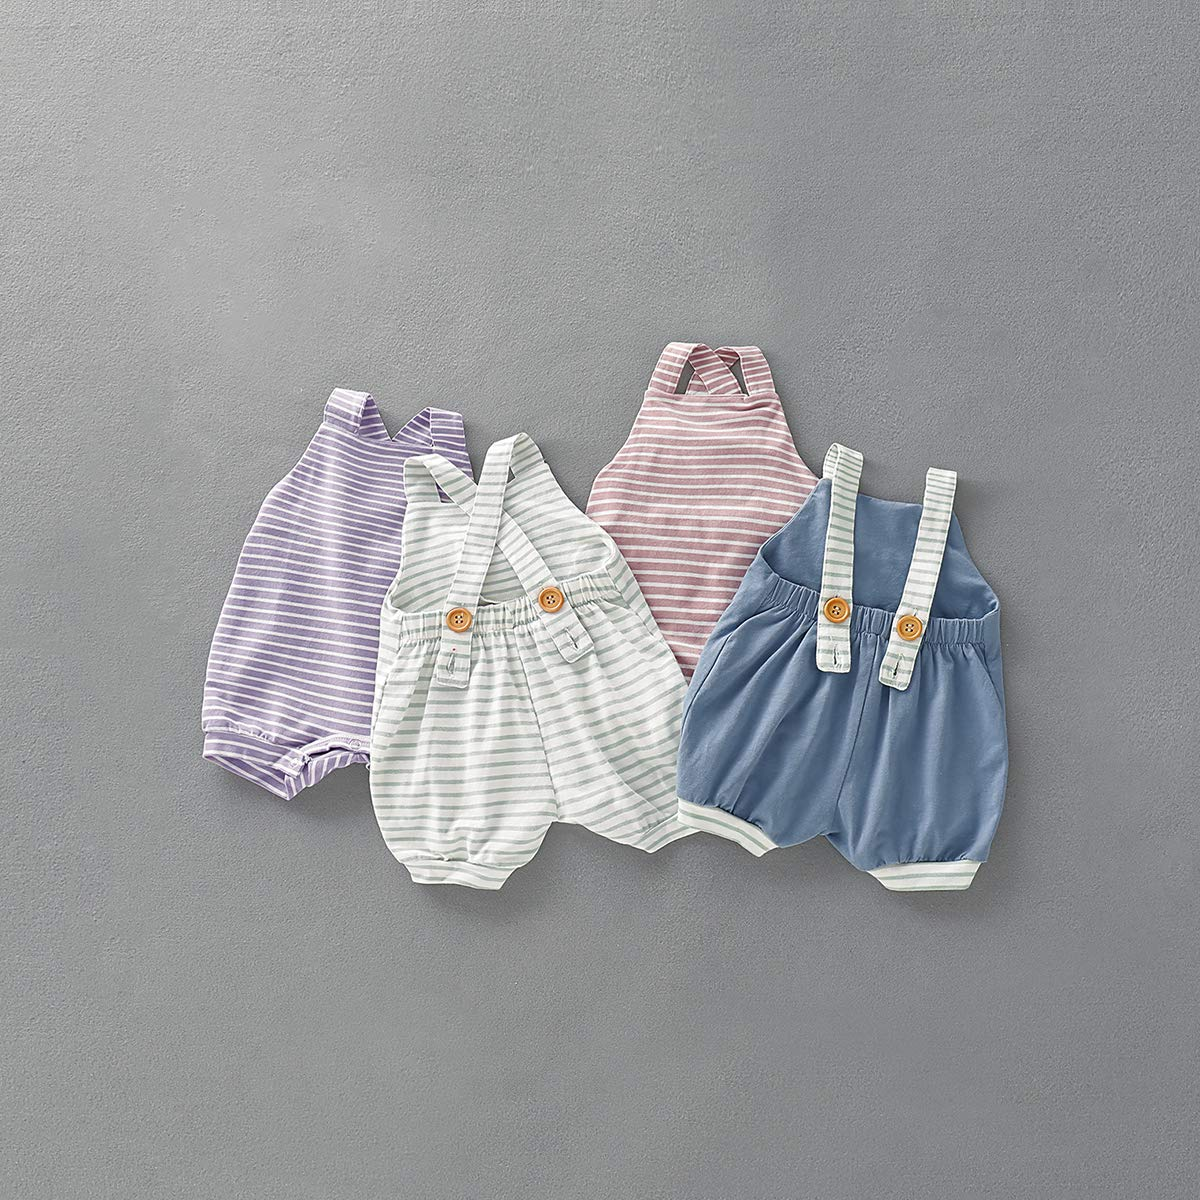 Yuemengxuan Infant Newborn Baby One Piece Summer Romper Baby Girl Boy Striped Jumpsuit Sleeveless Backless Clothes Outfits